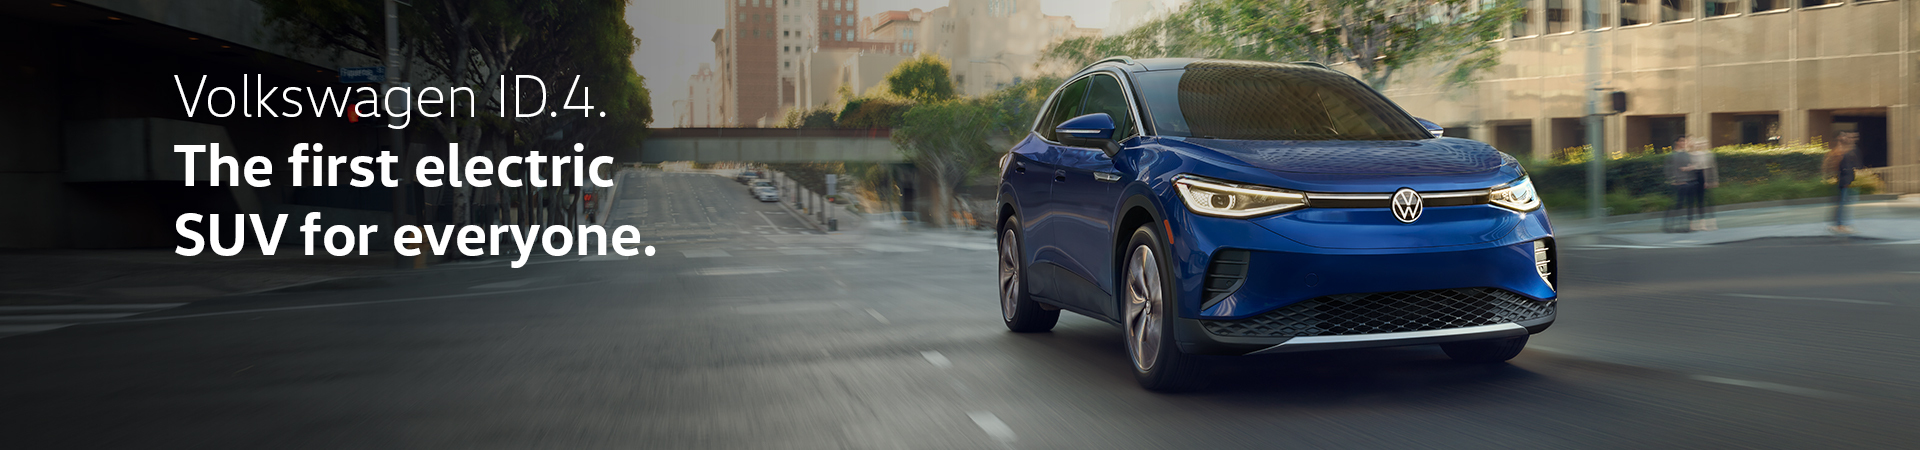 Blue-Volkswagen-ID4-electric-SUV-driving-down-the-street